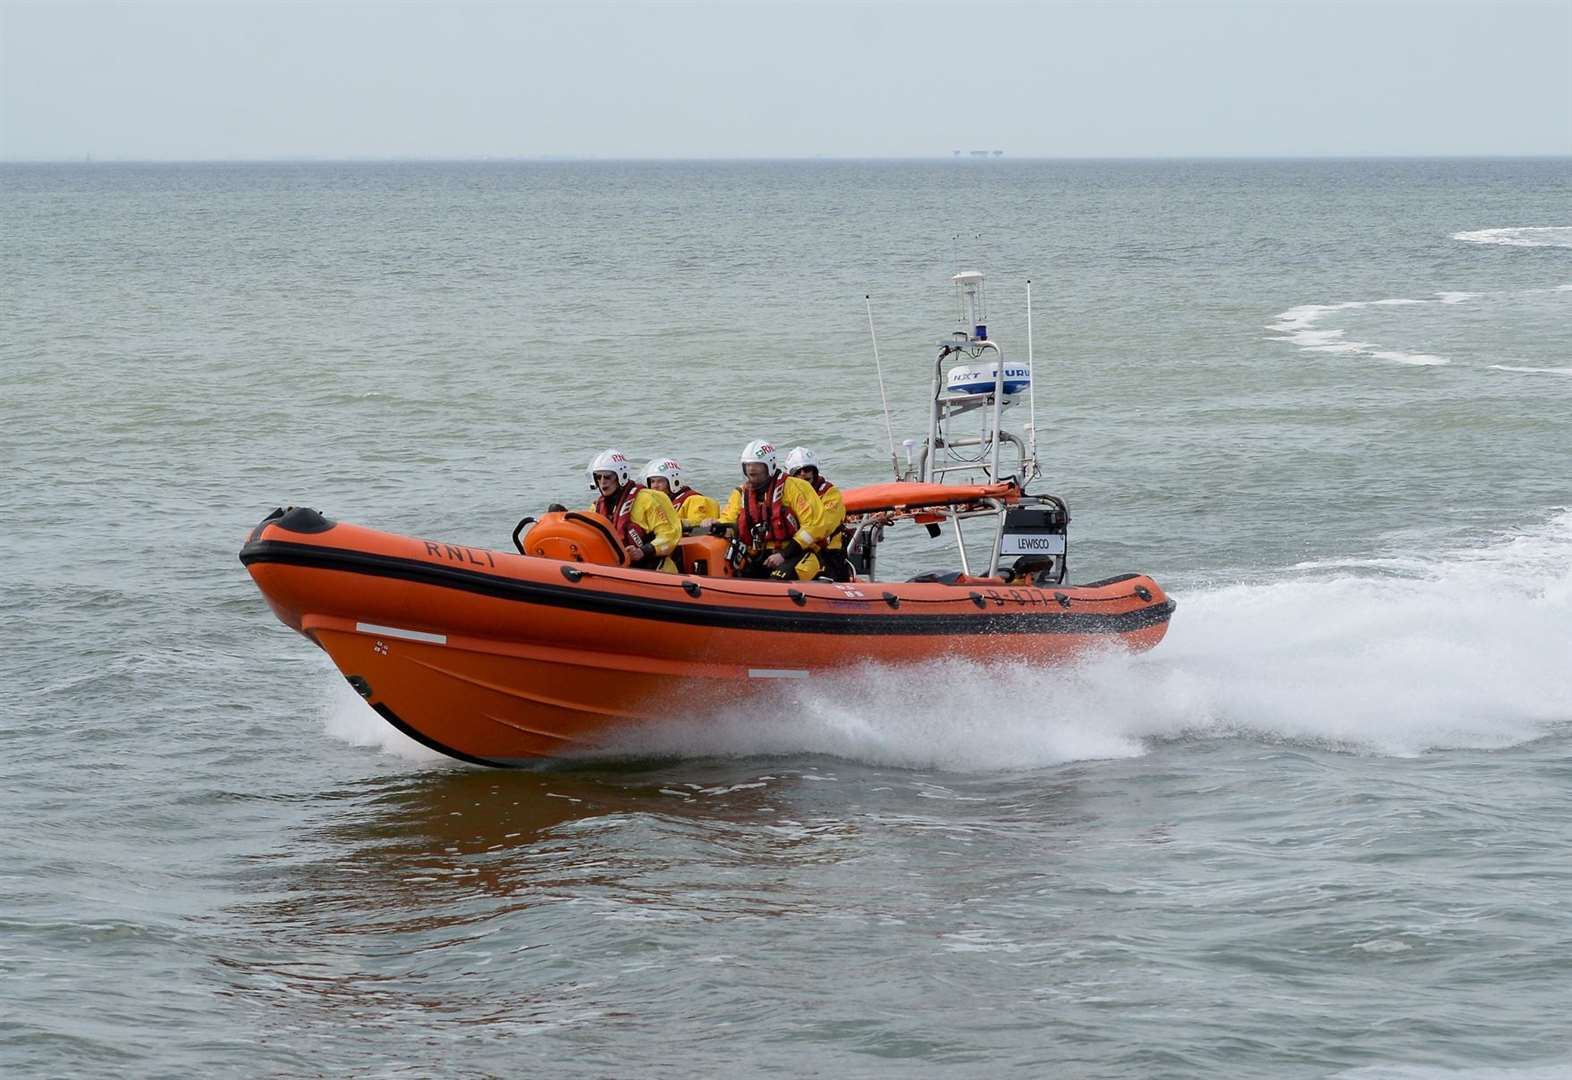 Busy weekend for lifeboat crews